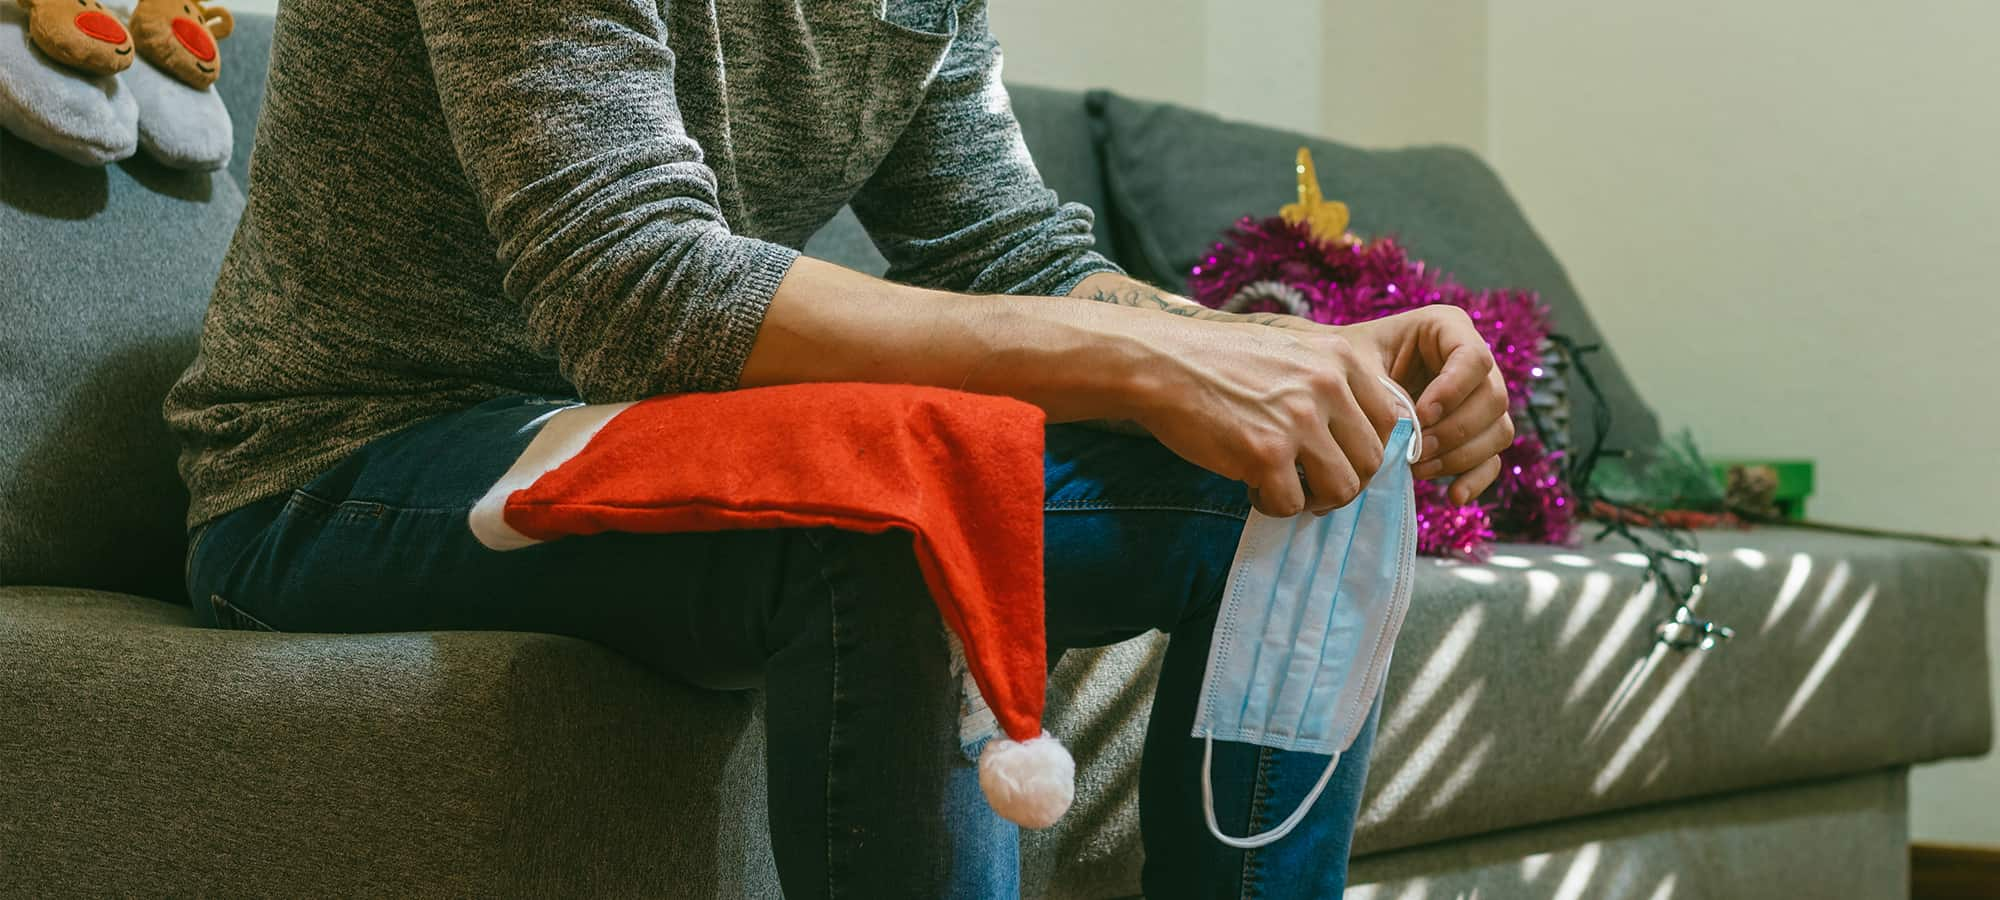 How to Deal with Christmas After Separating from Your Partner